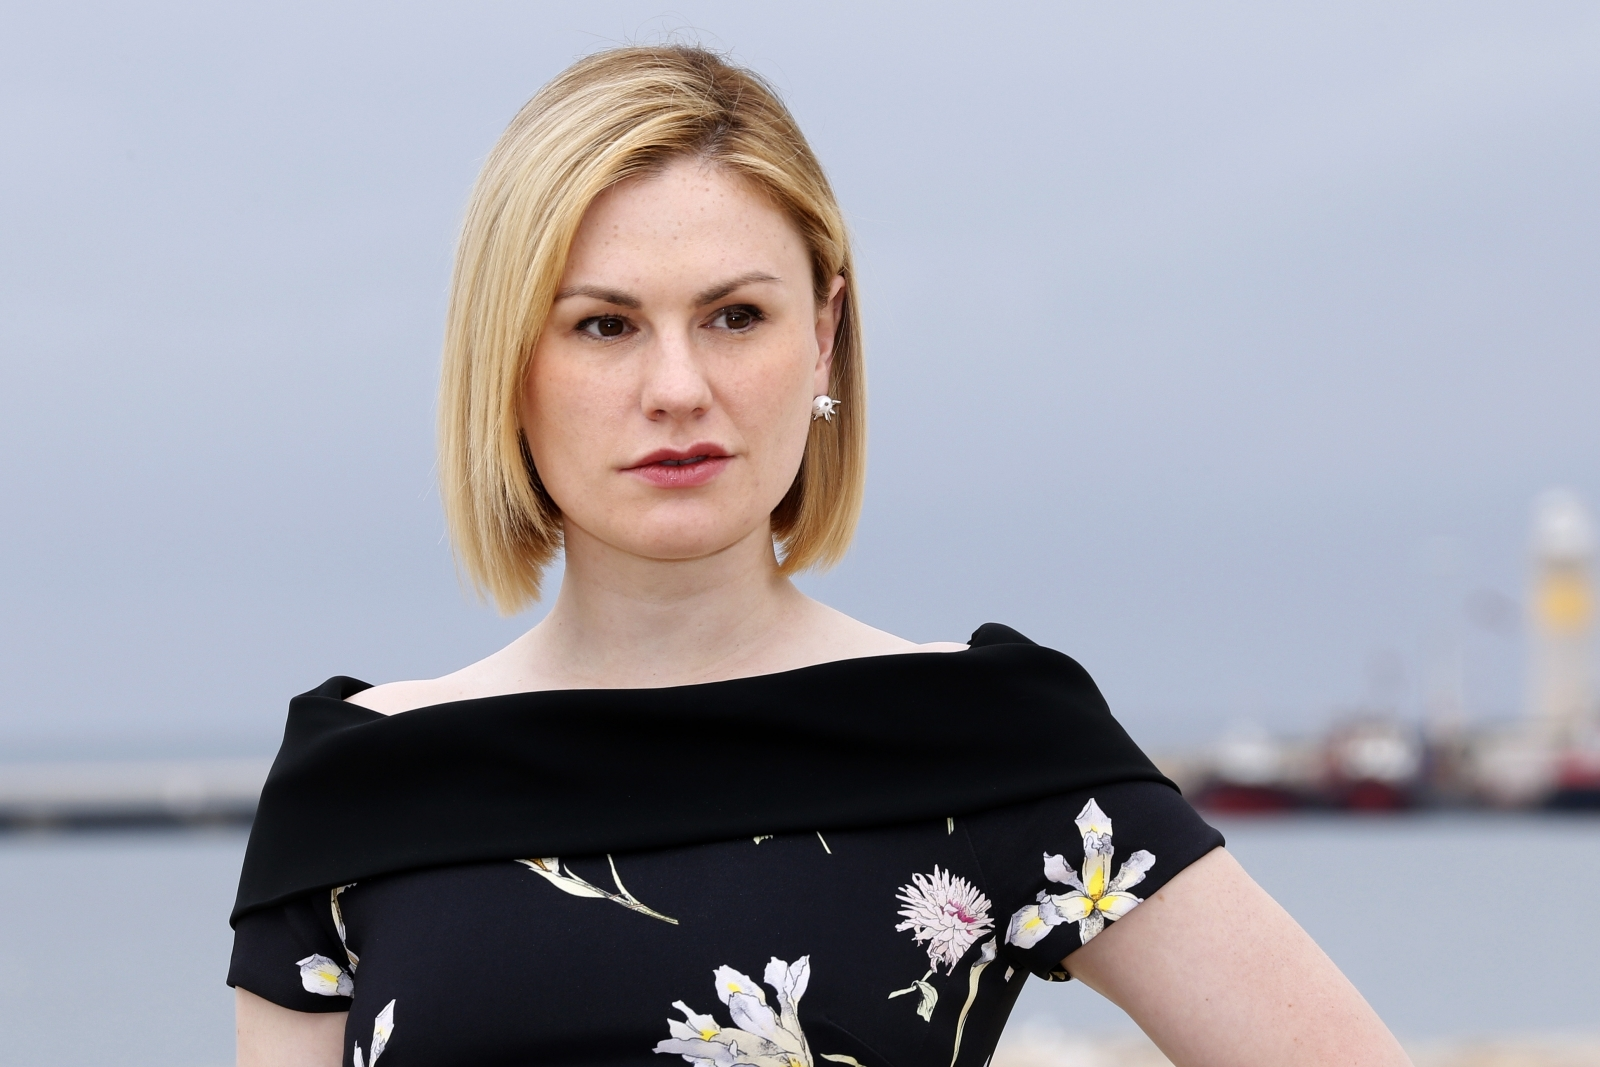 Anna Paquin jokes about BBC breast broadcast